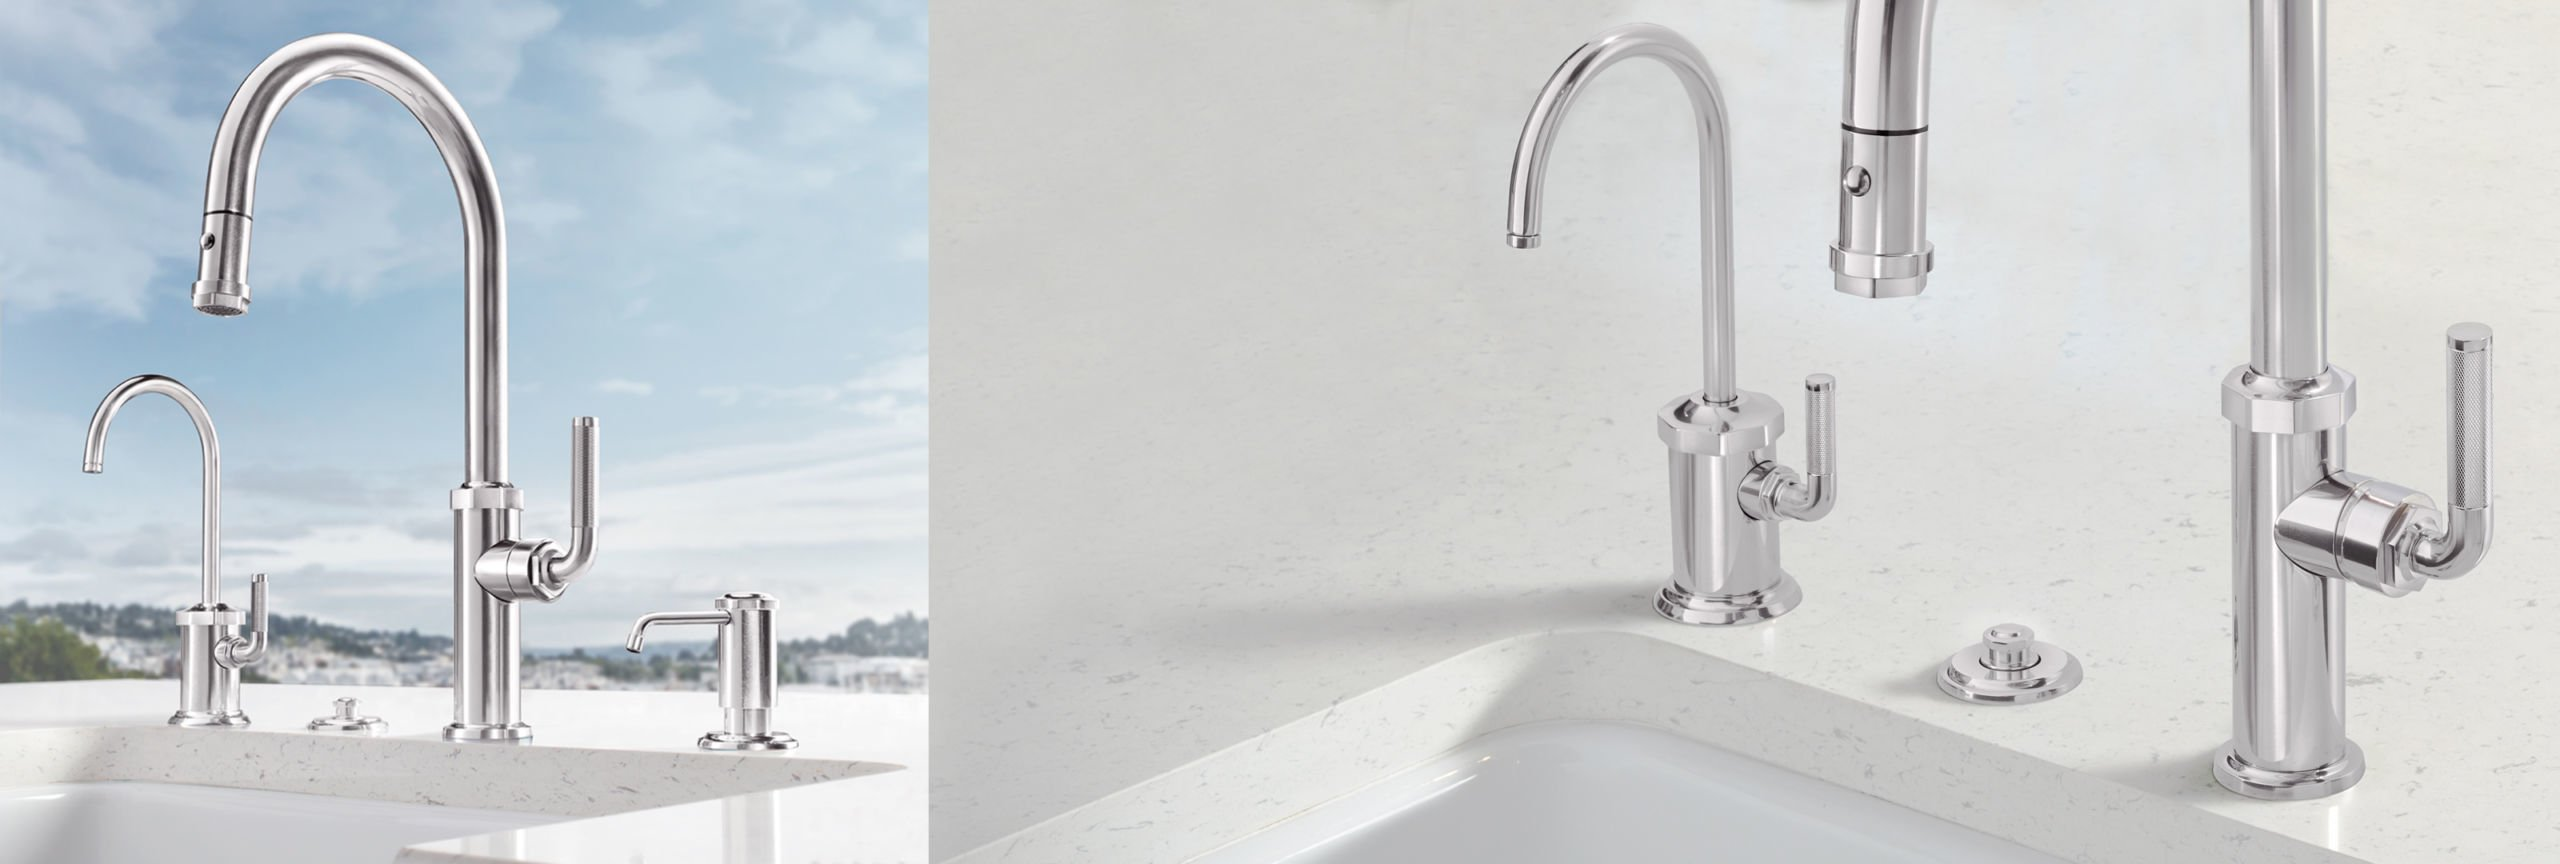 kitchen series corsano faucet water spout and trim accessories